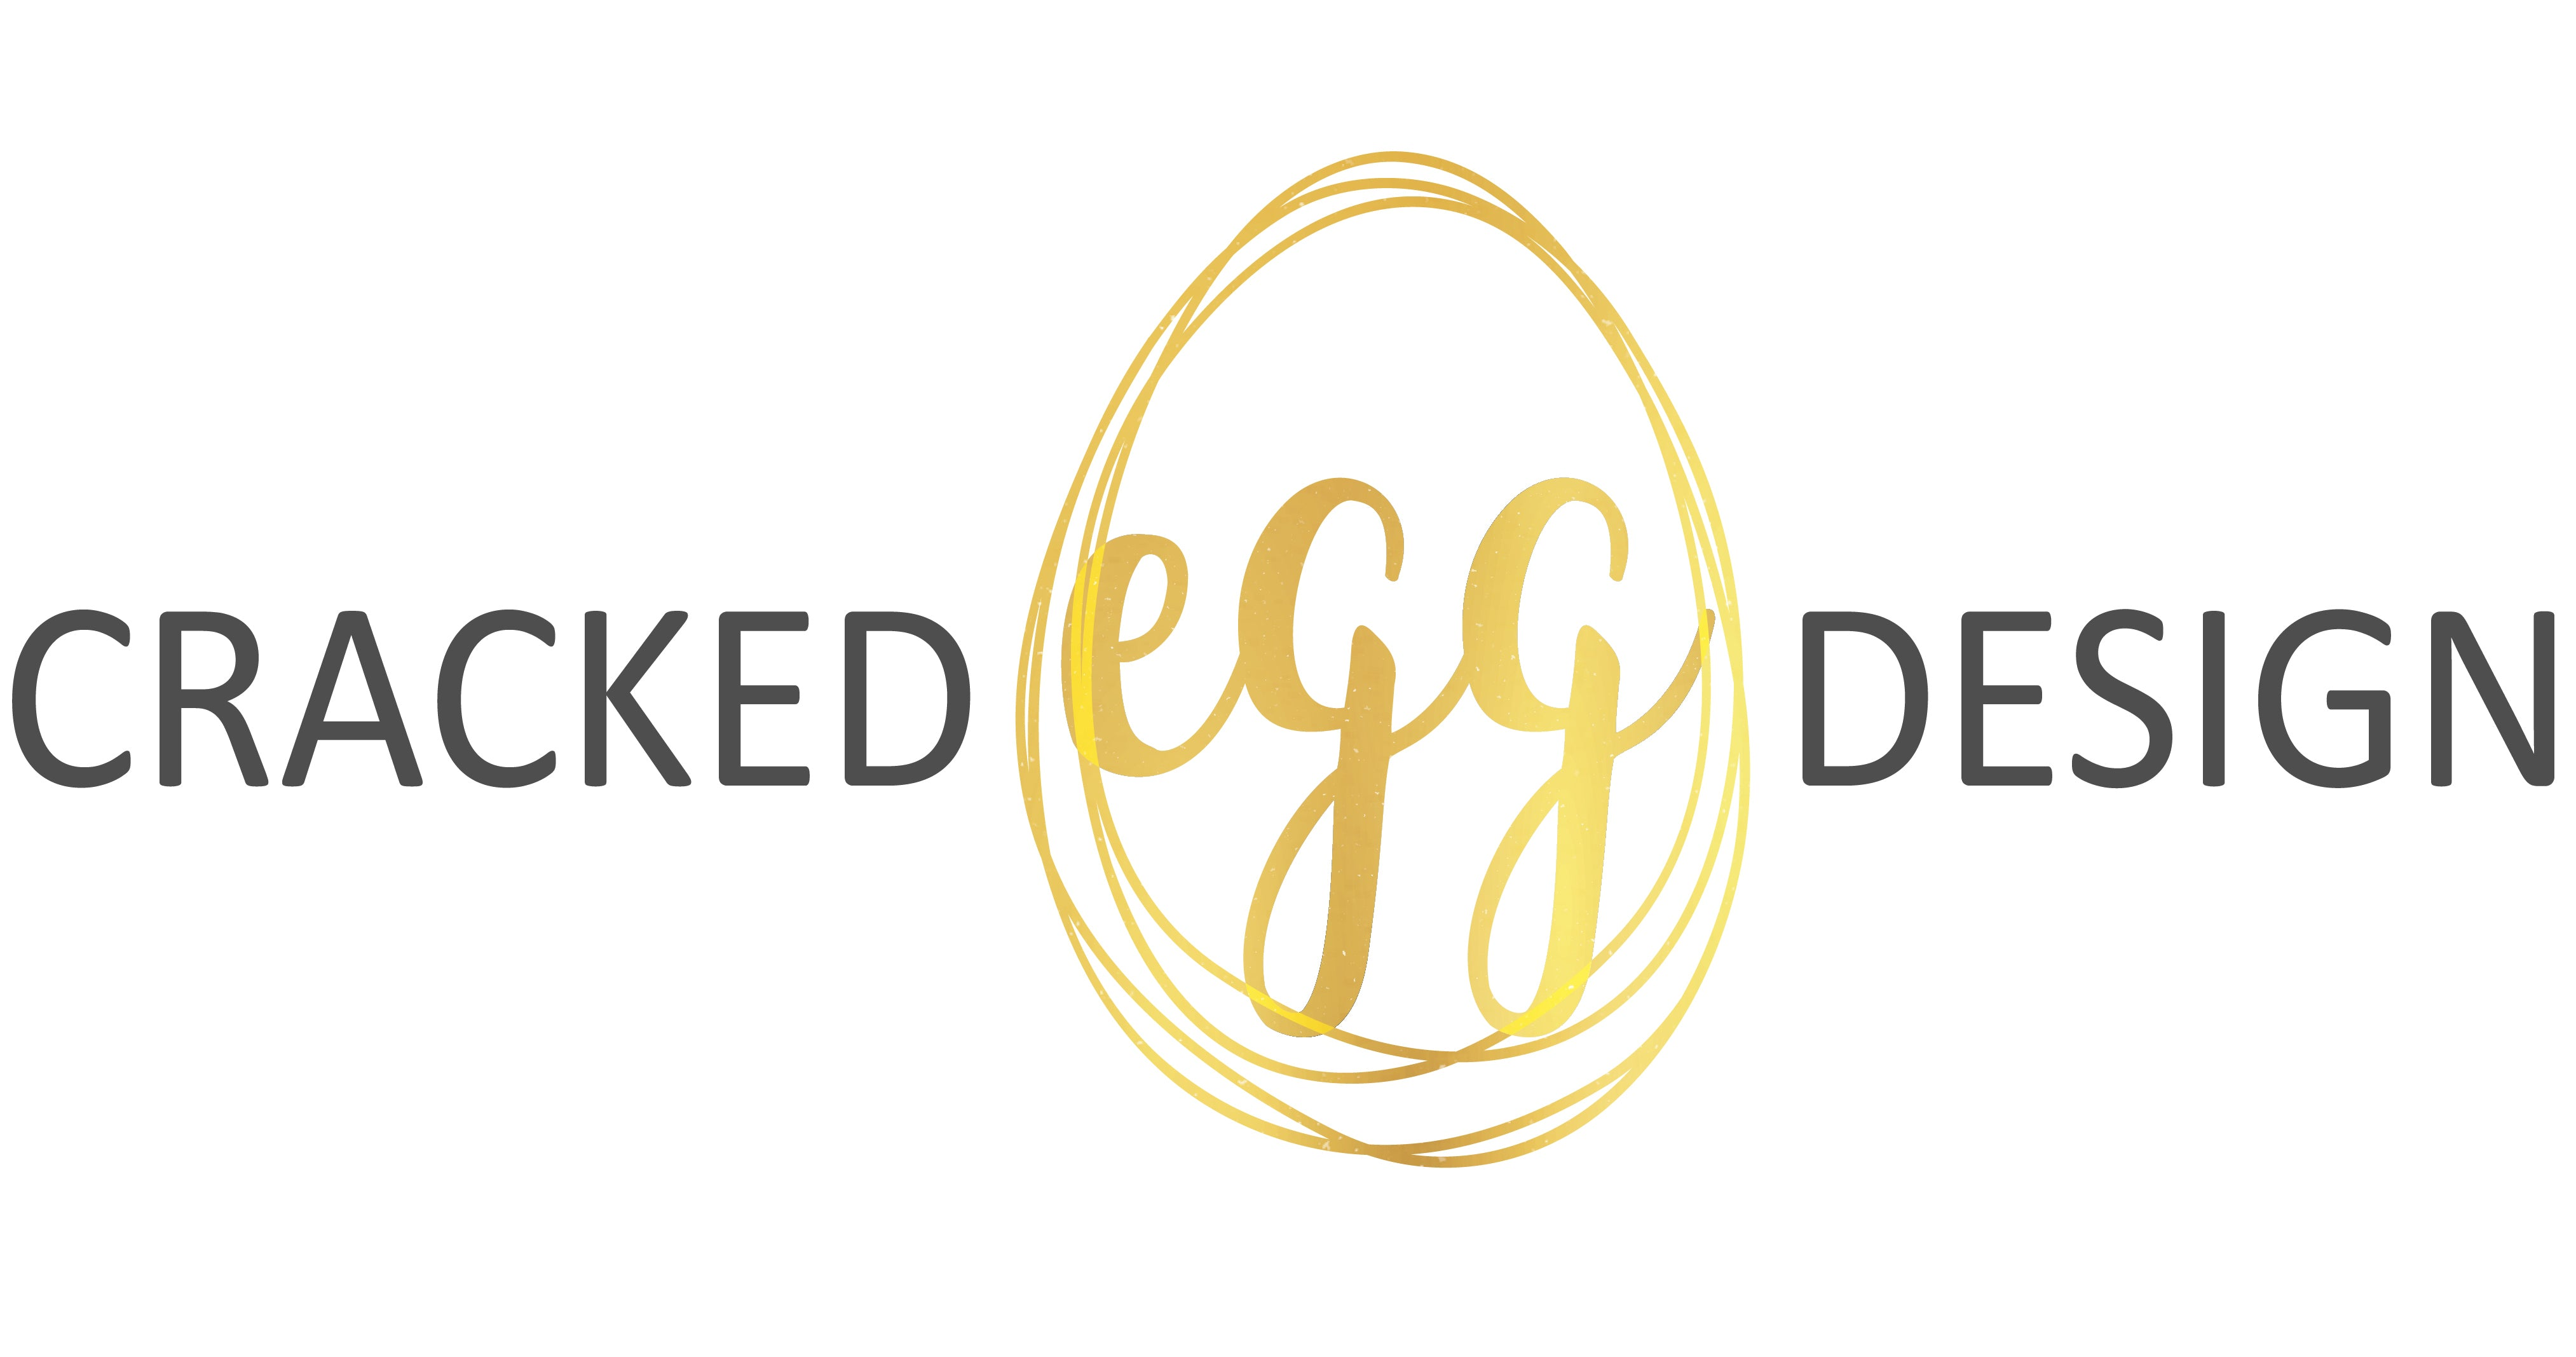 Cracked Egg Design